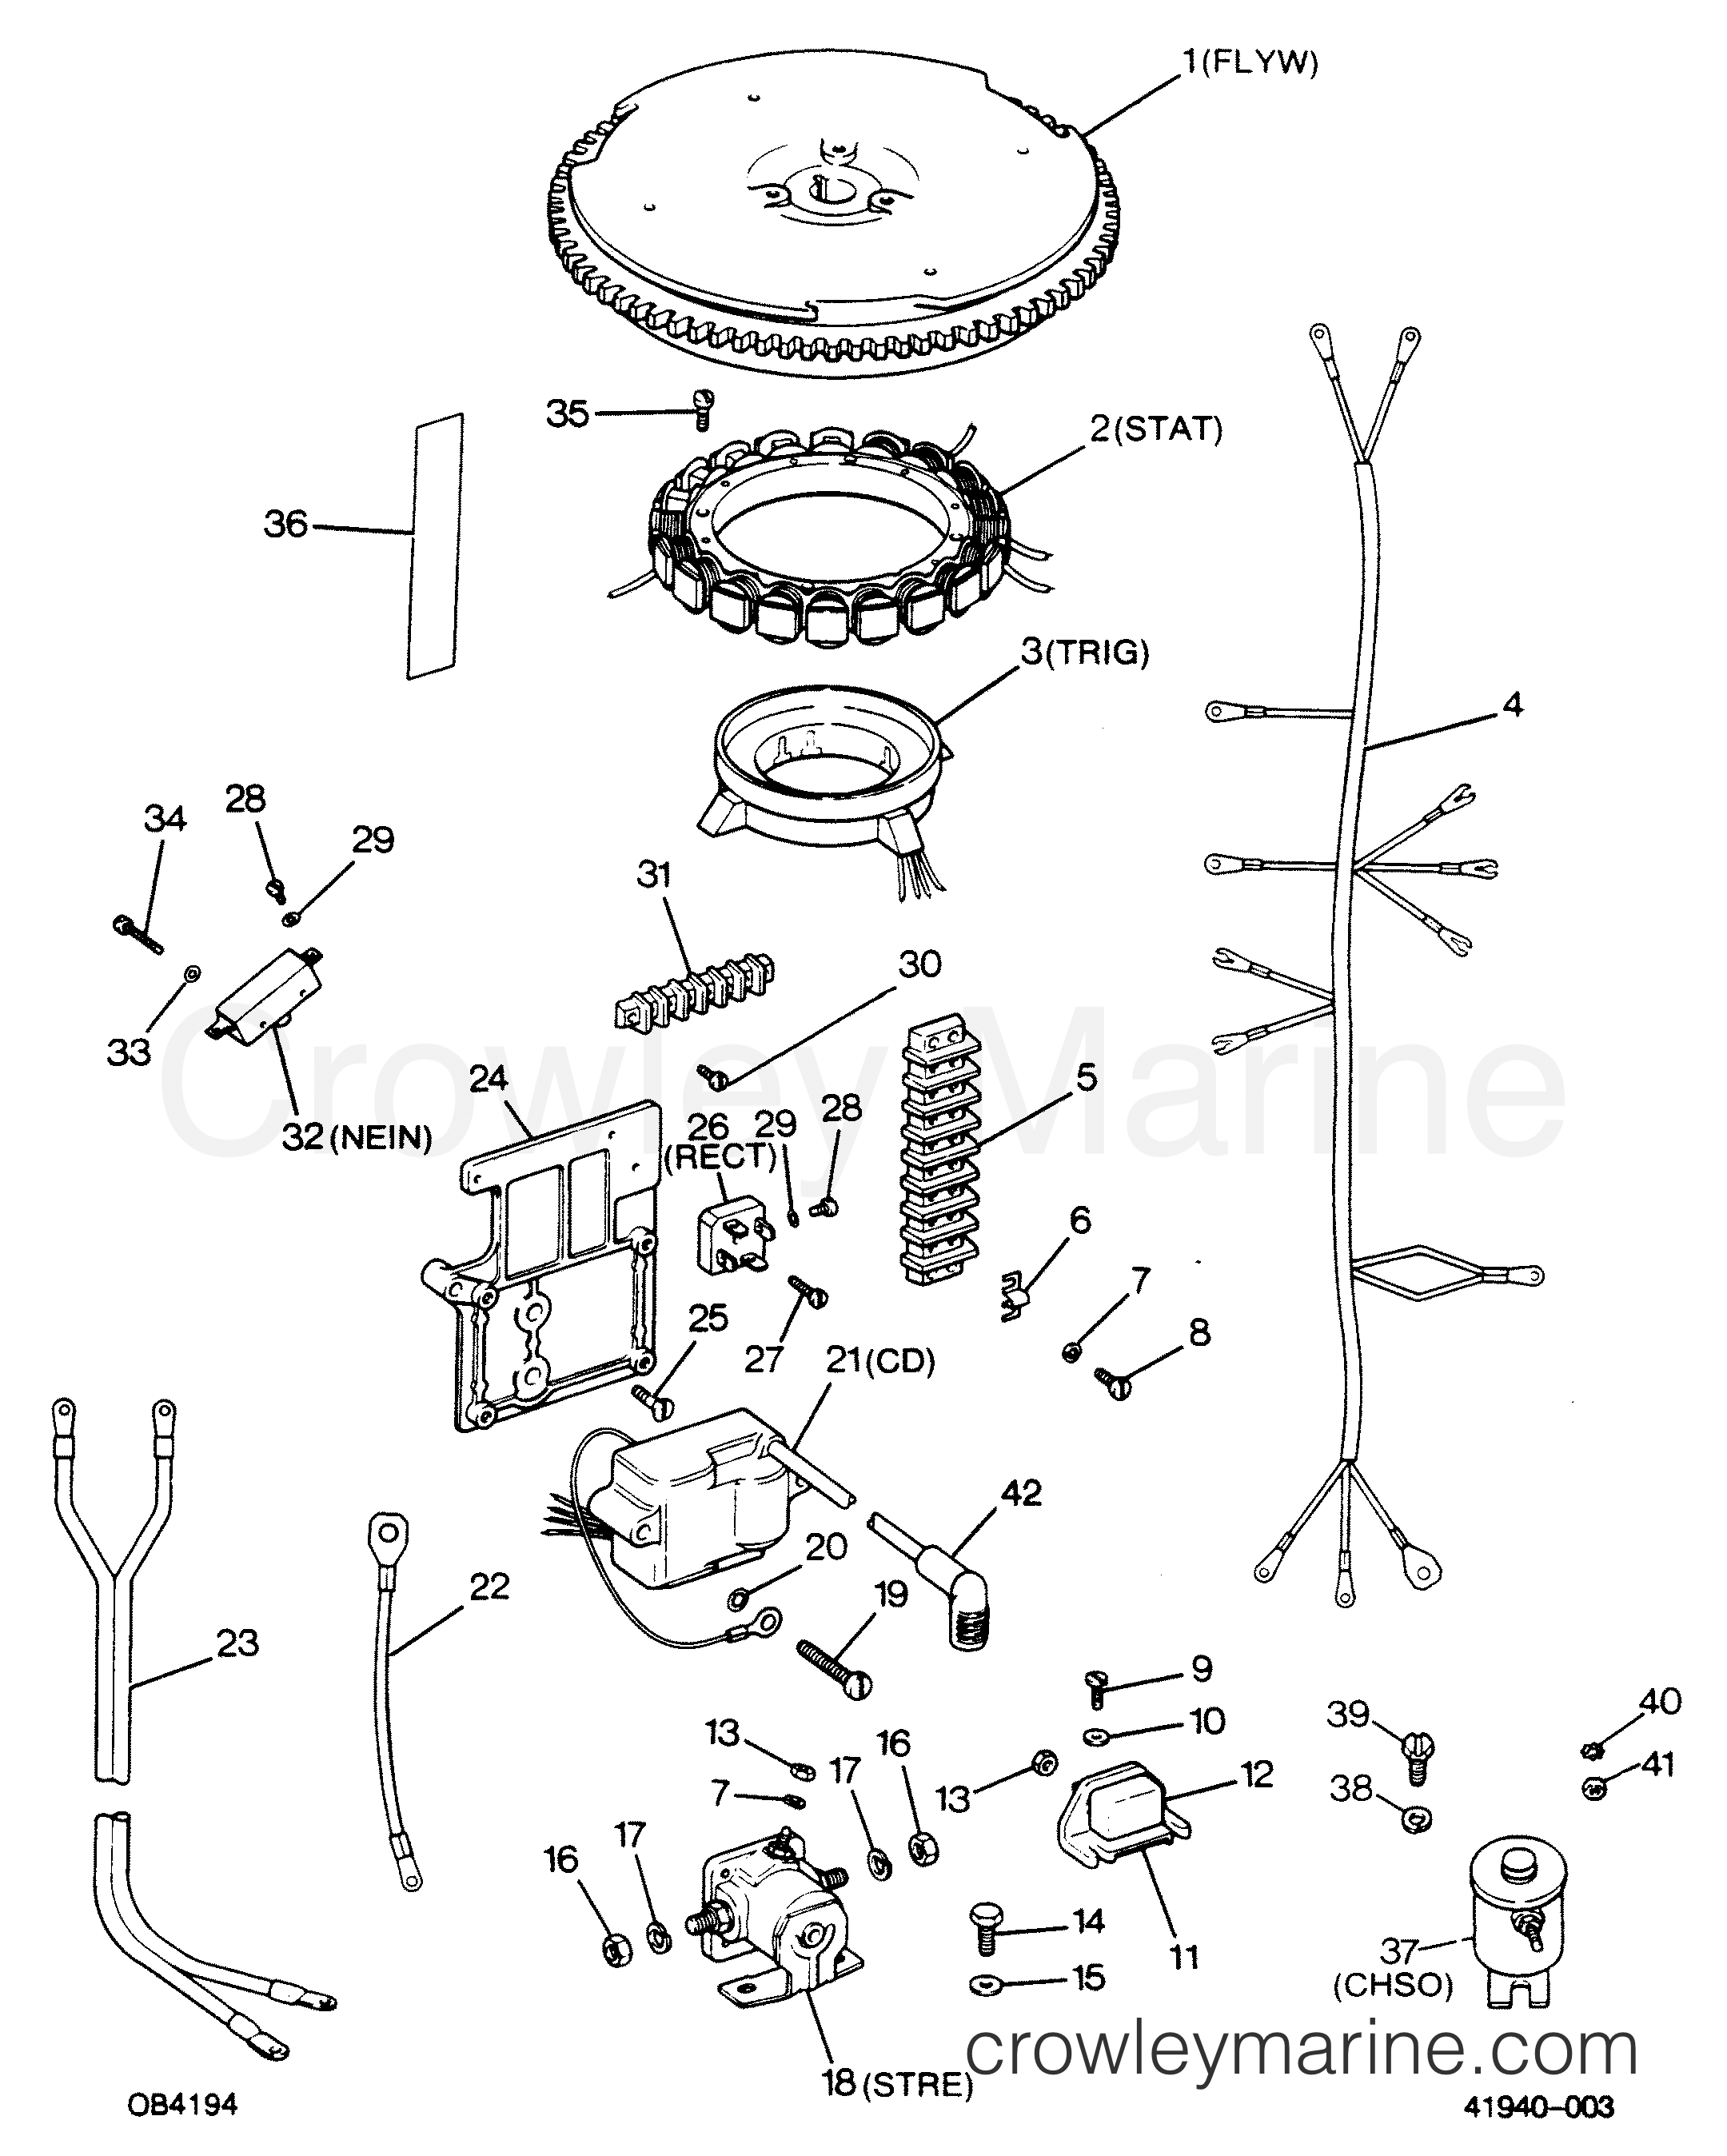 alternator and electrical components